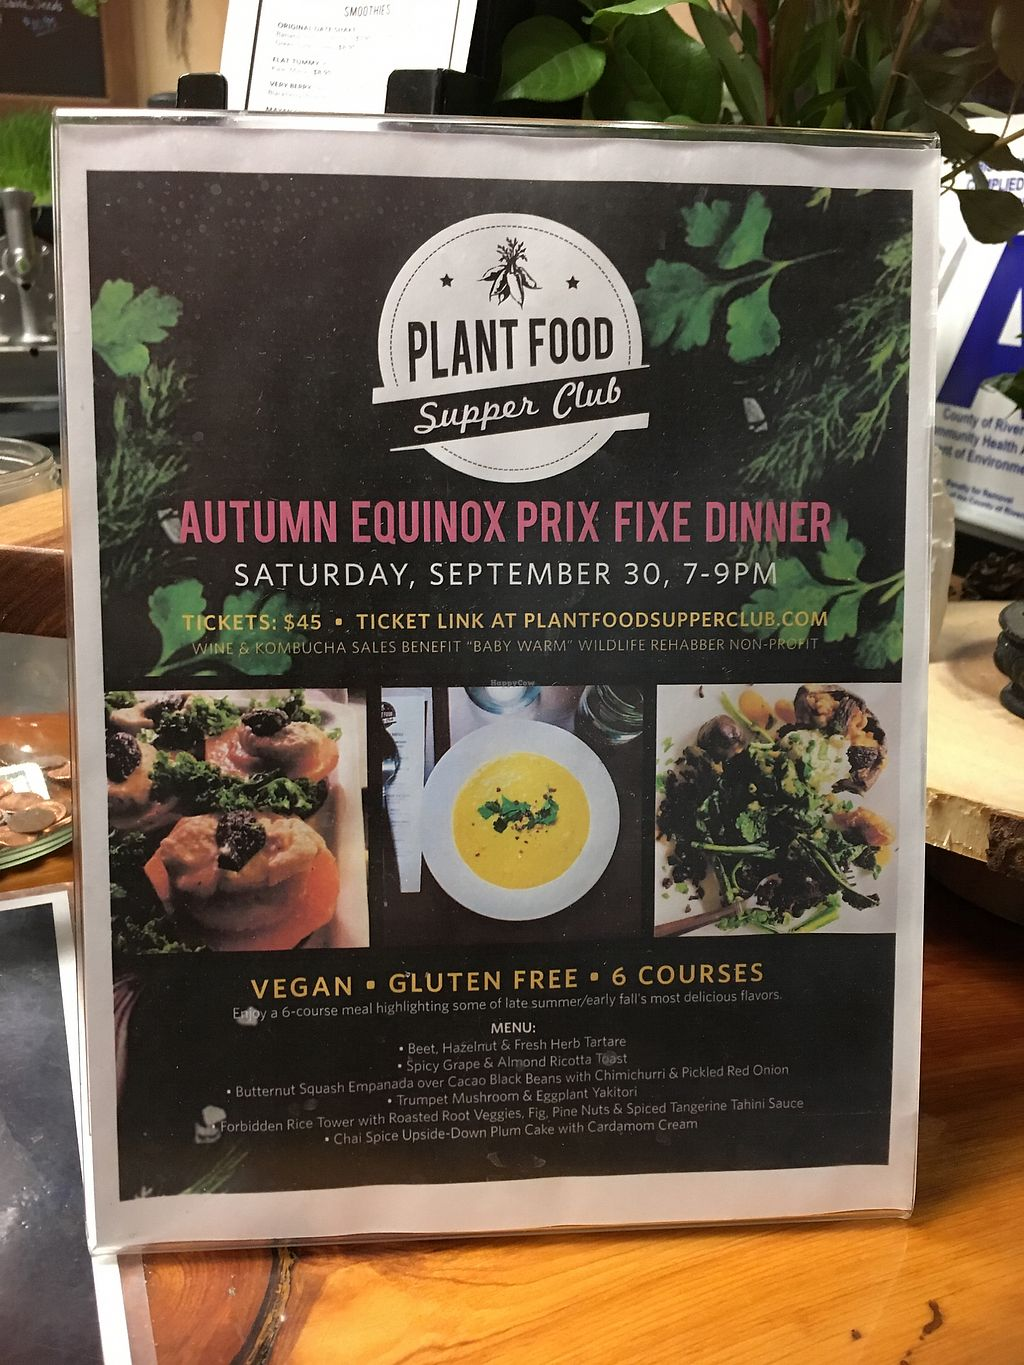 """Photo of Plant Food Supper Club  by <a href=""""/members/profile/RedheadedR"""">RedheadedR</a> <br/>Prize fixe dinner 9-30-17 <br/> September 17, 2017  - <a href='/contact/abuse/image/82687/305295'>Report</a>"""